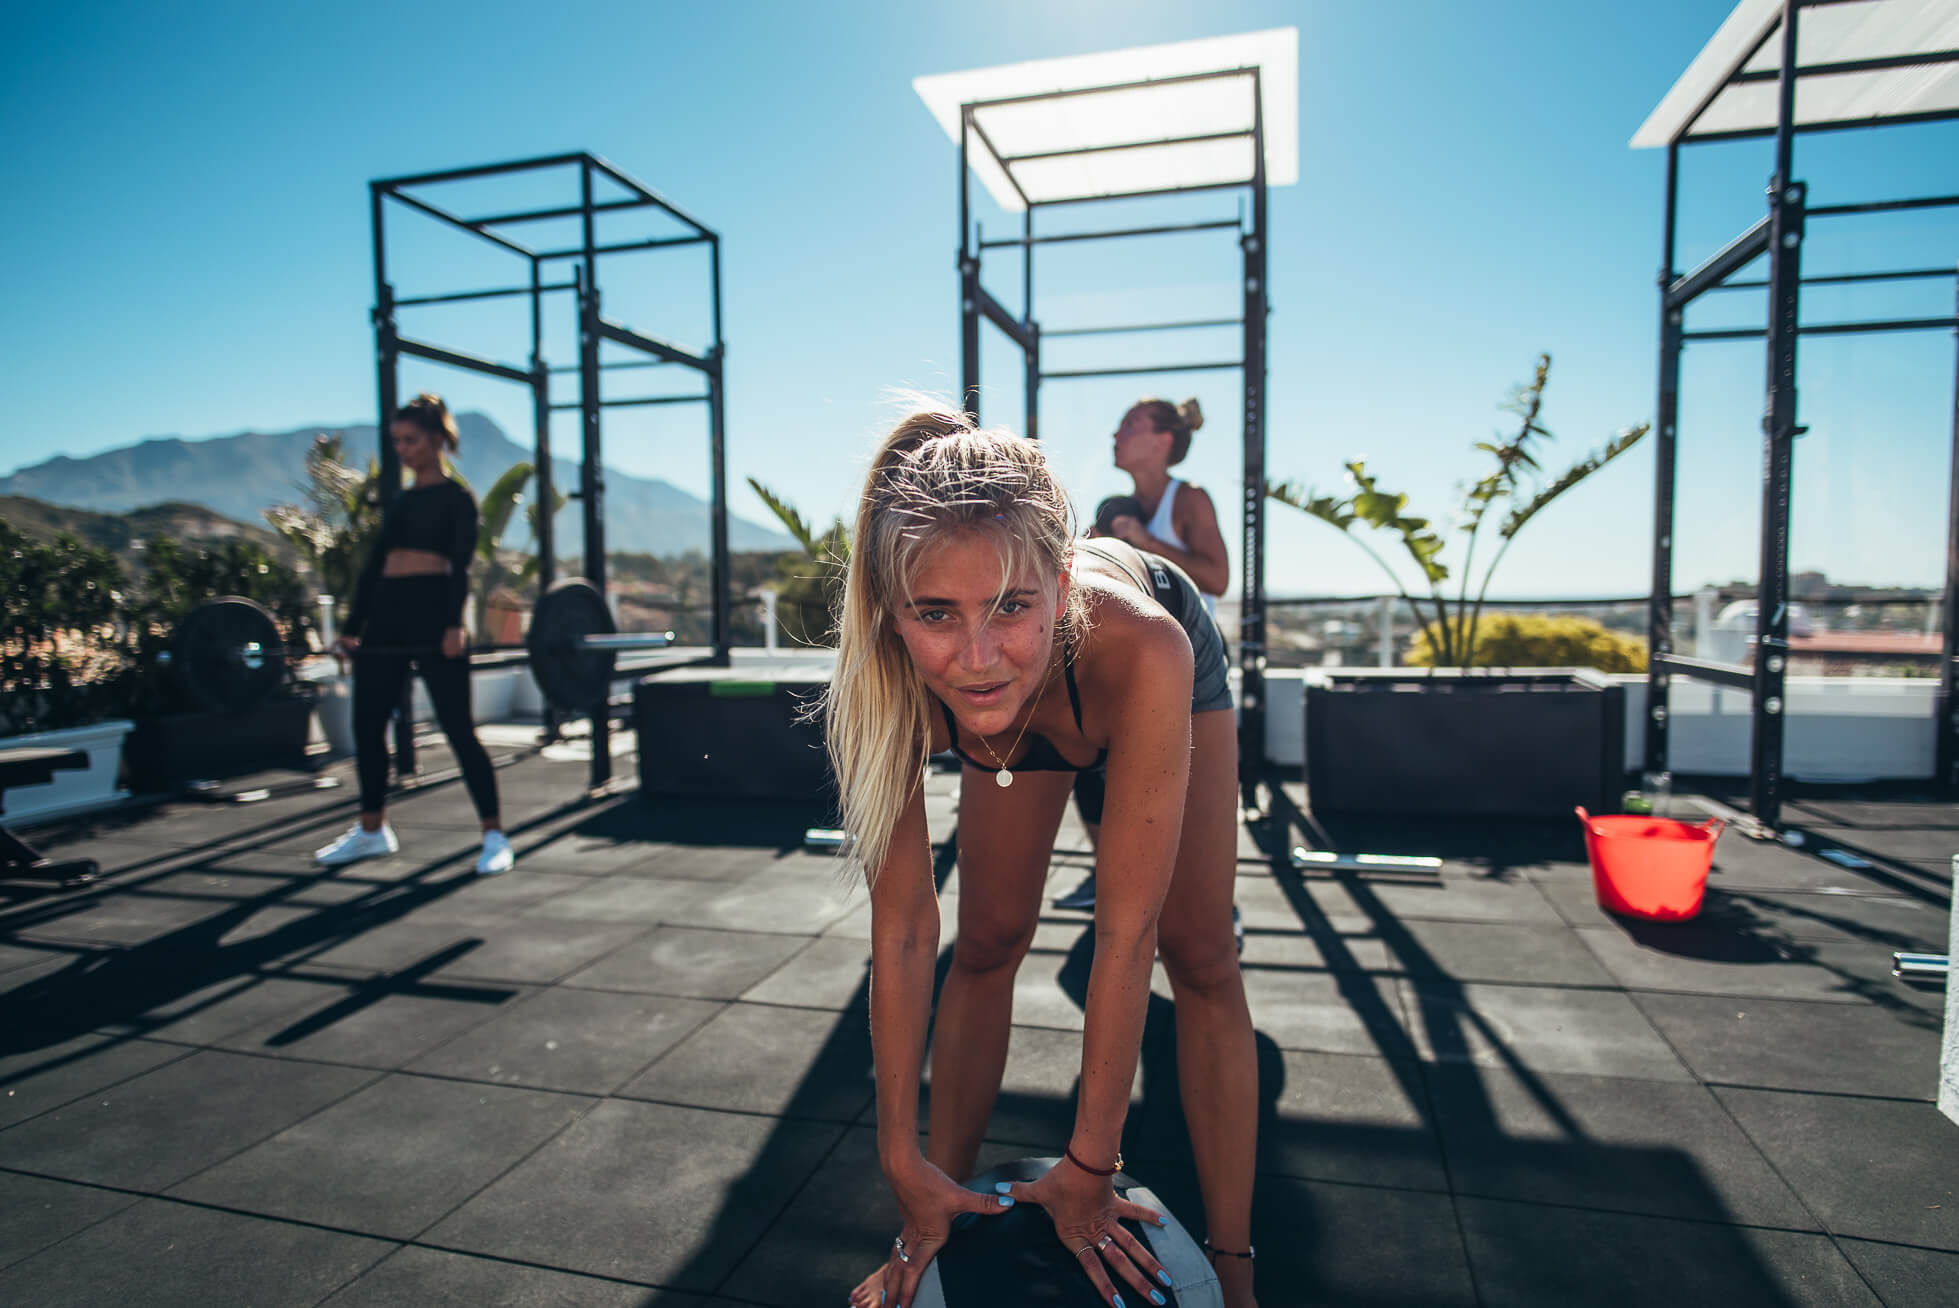 janni-deler-killer-workoutDSC_7356